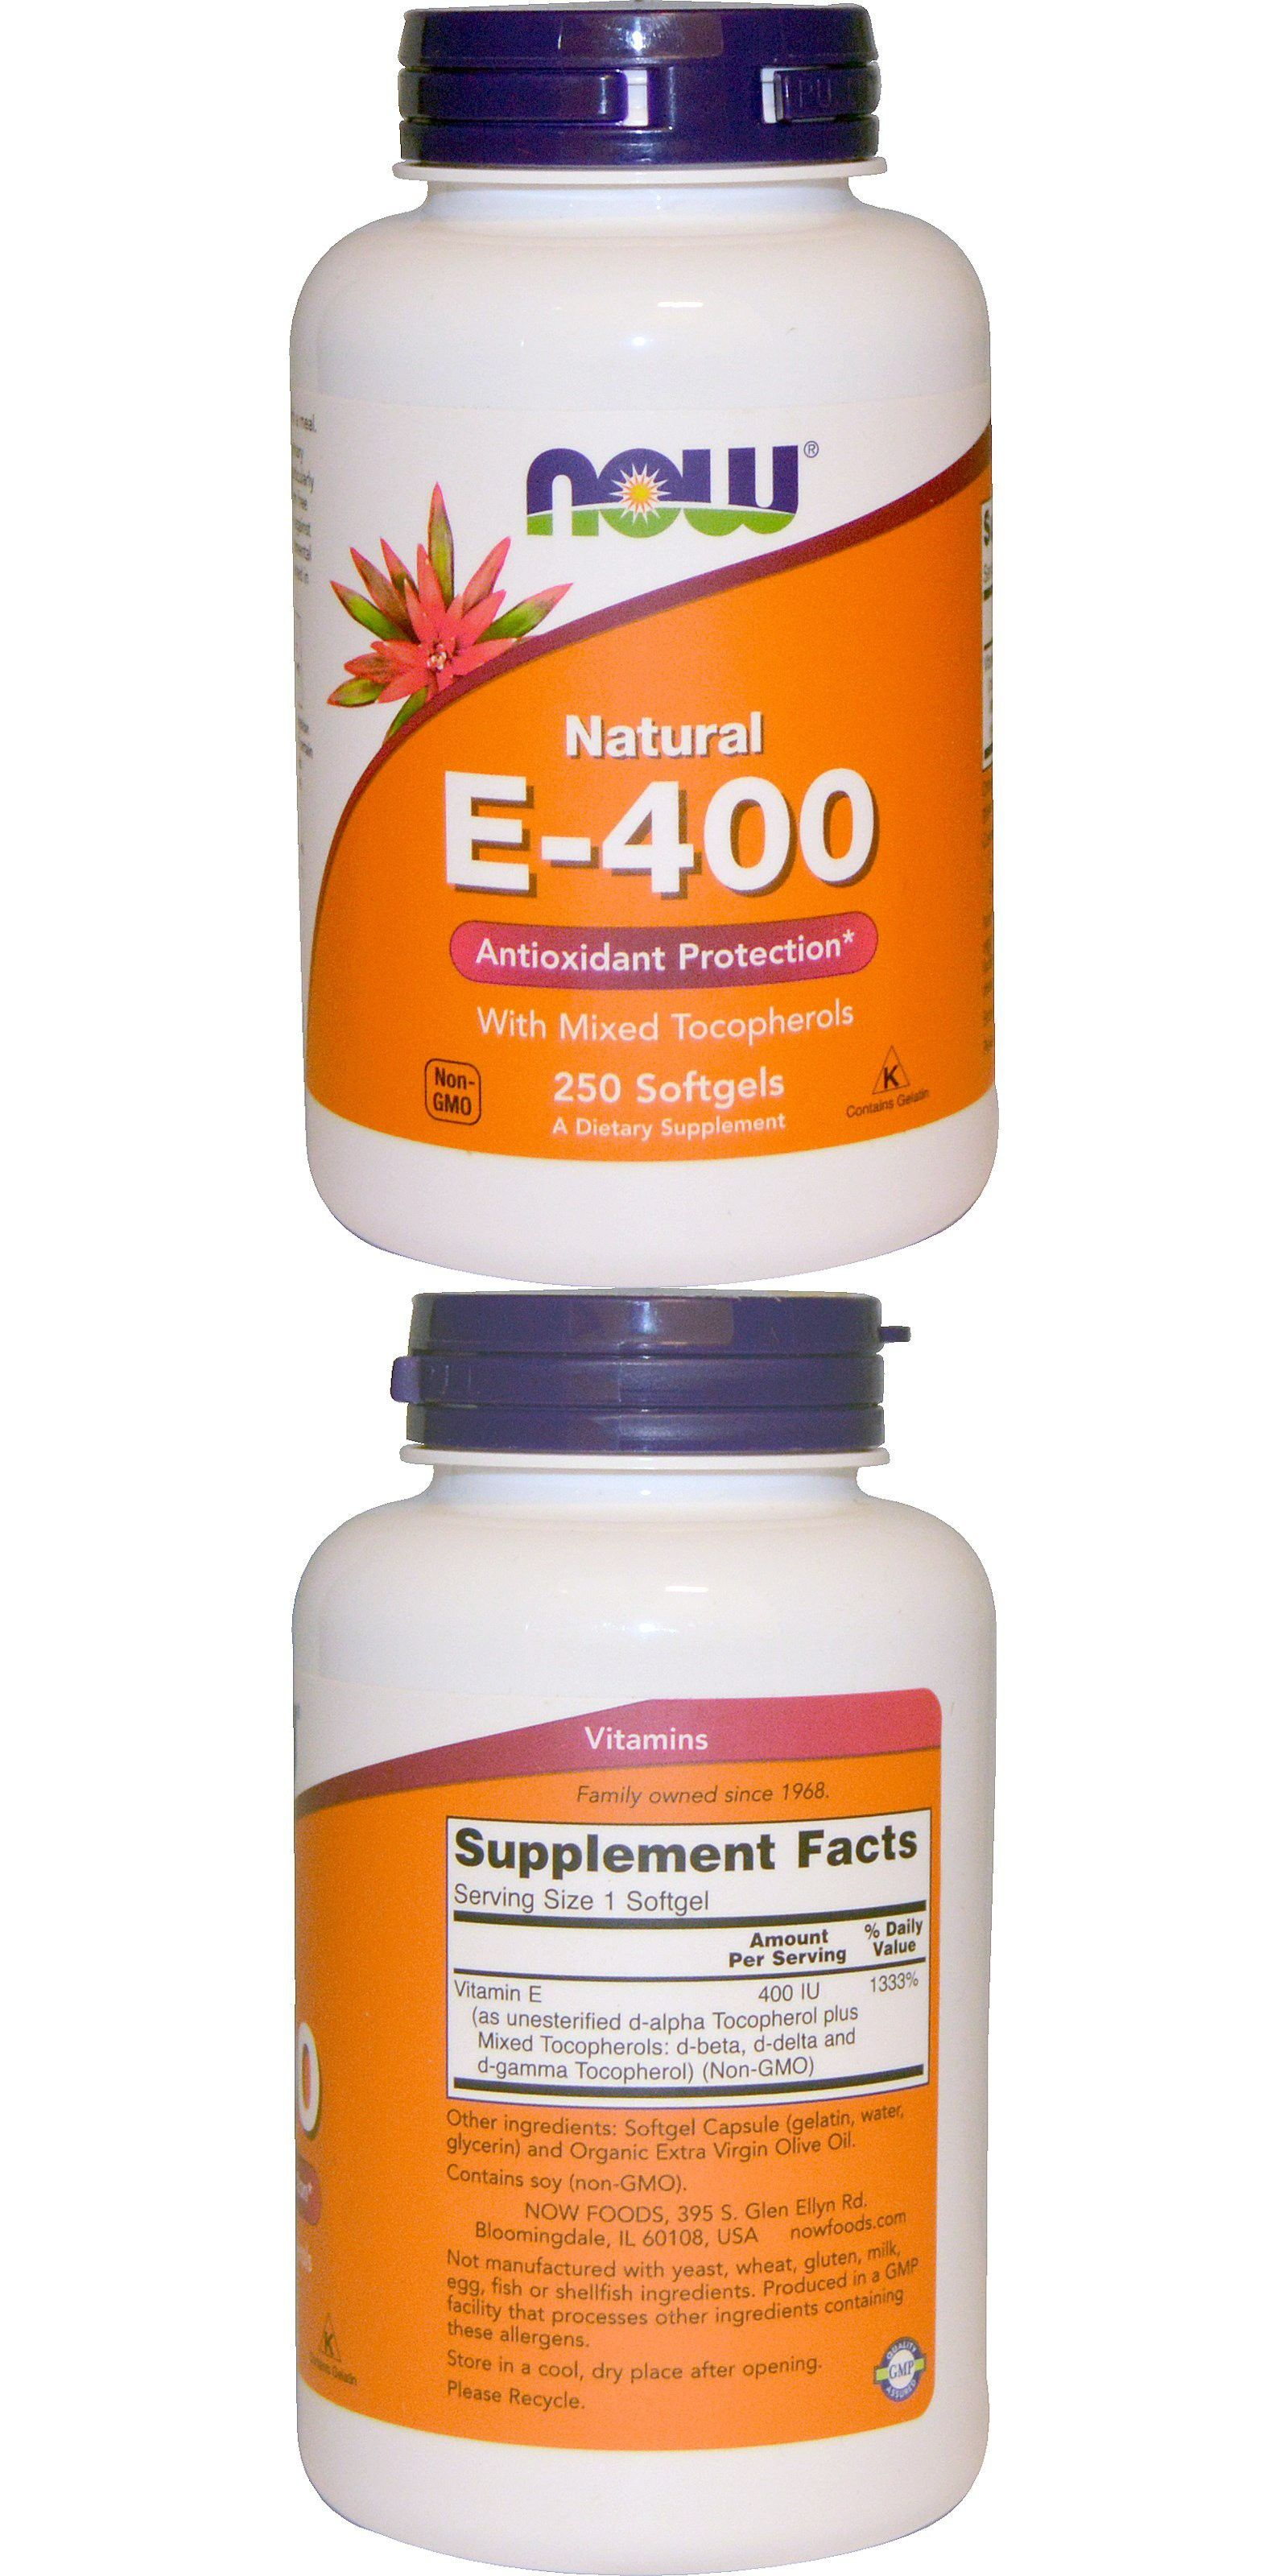 Natural e400 with mixed tocopherols 250 softgels in 2020